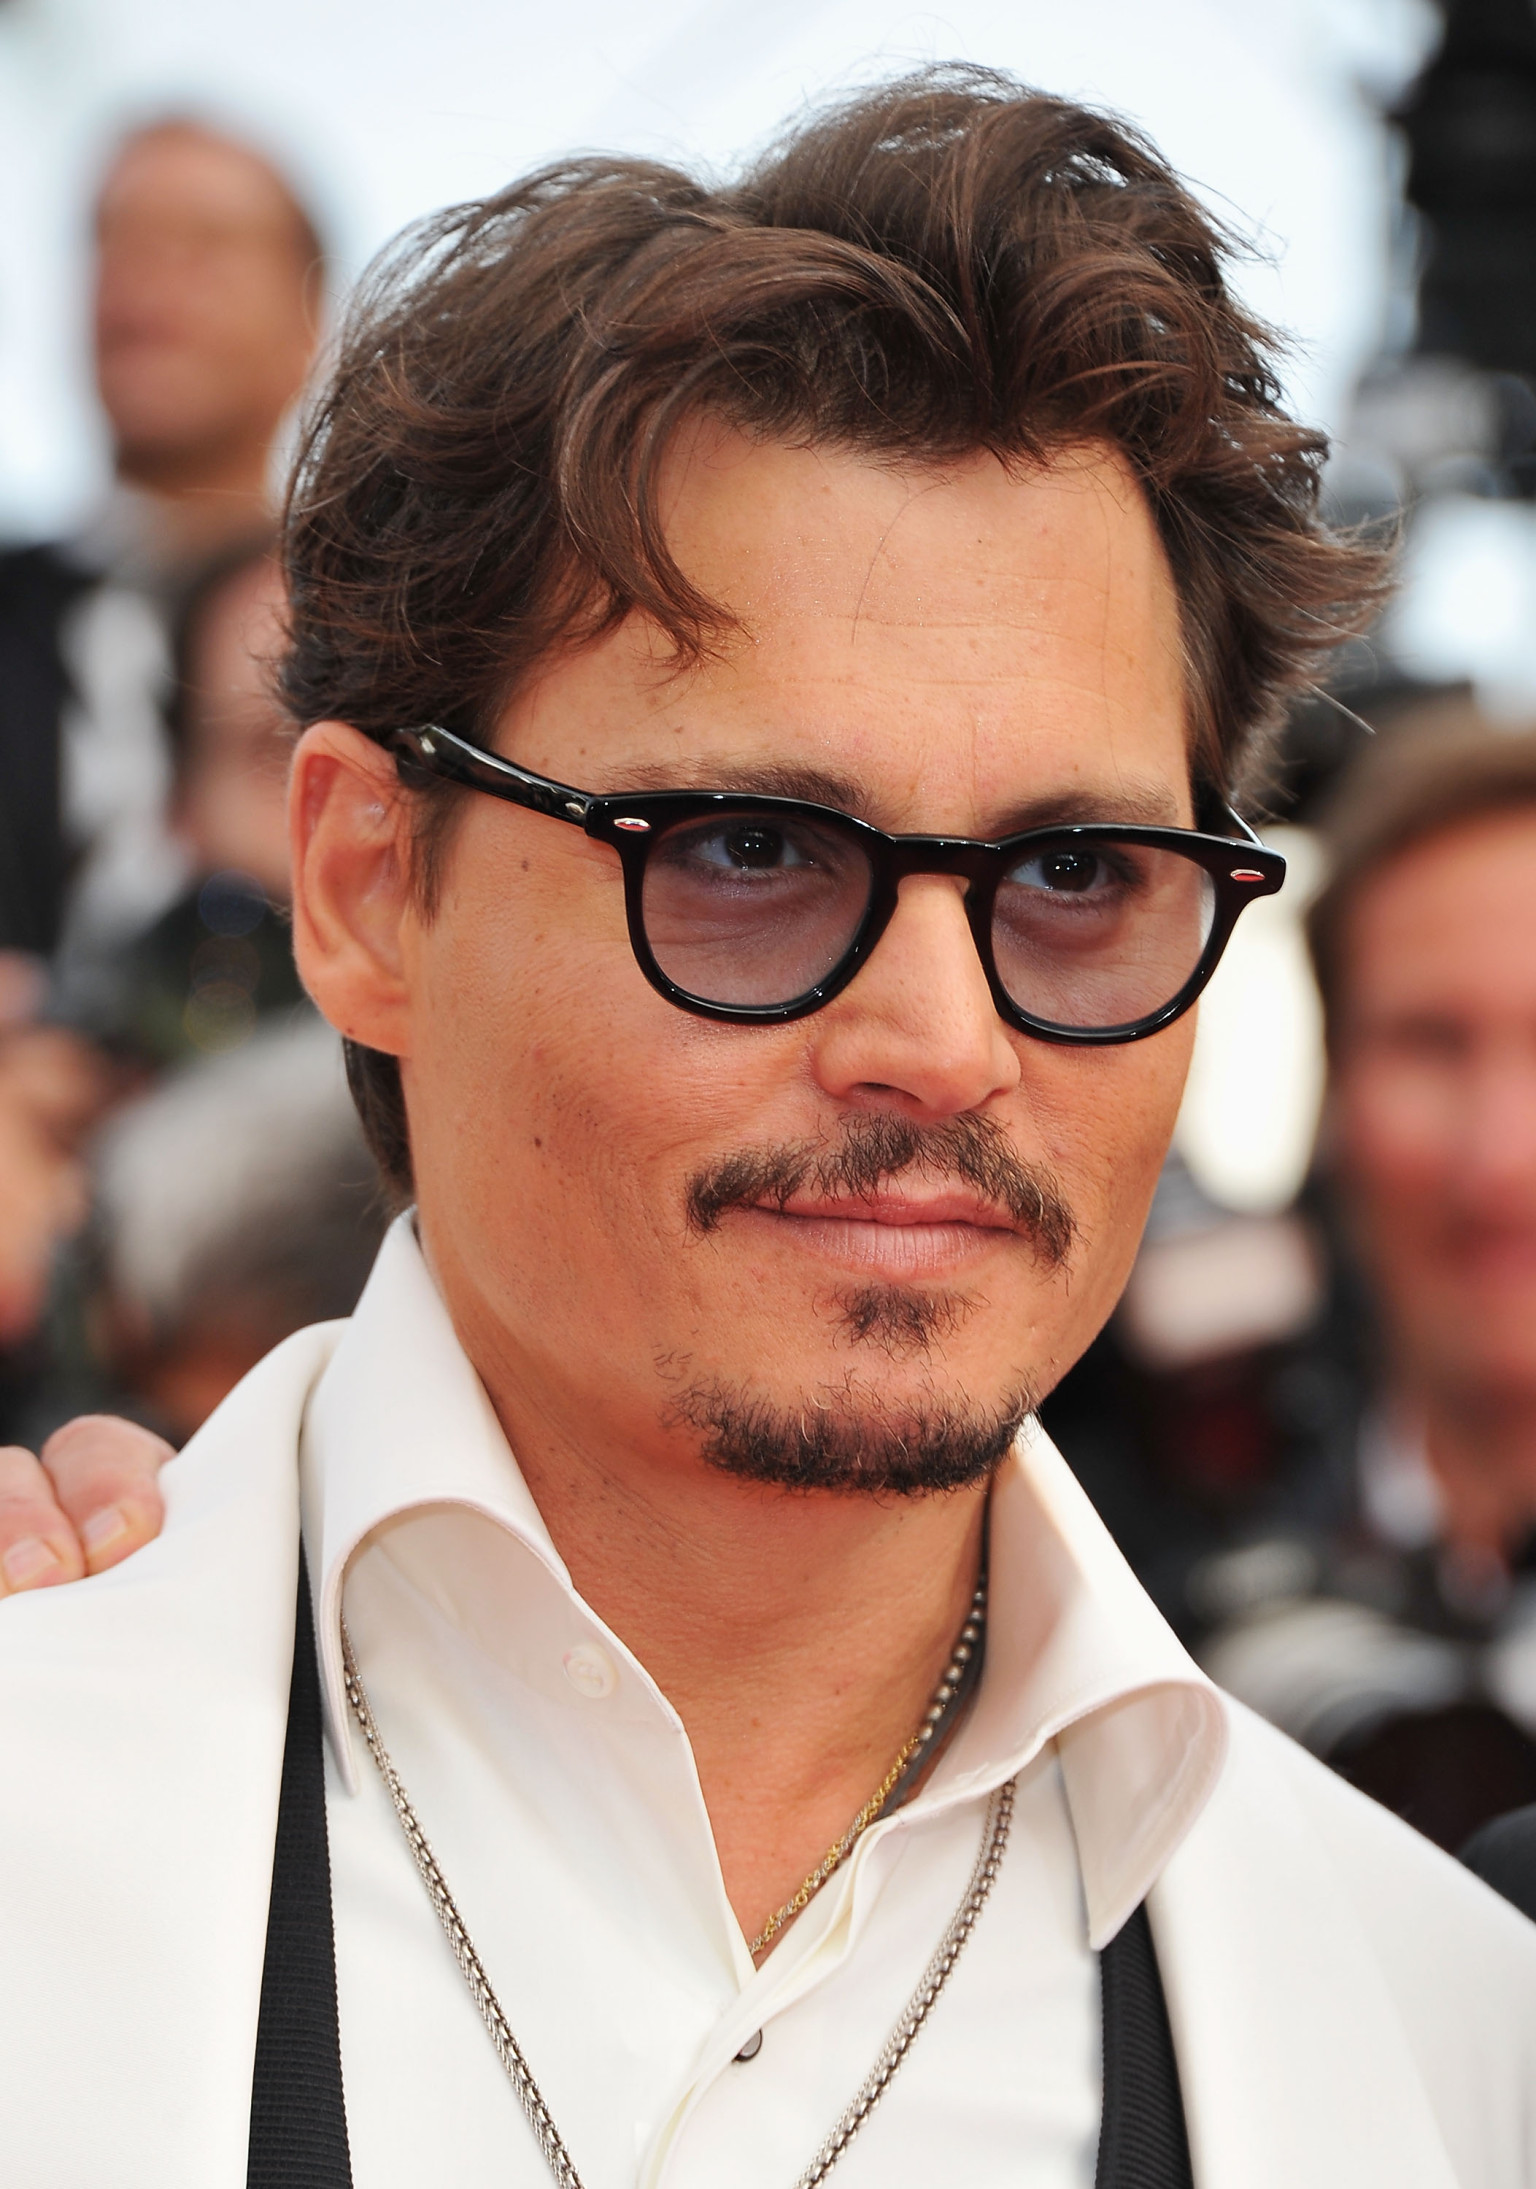 Johnny Depp Put A Huge Scorpion In His Mouth For Fun ...